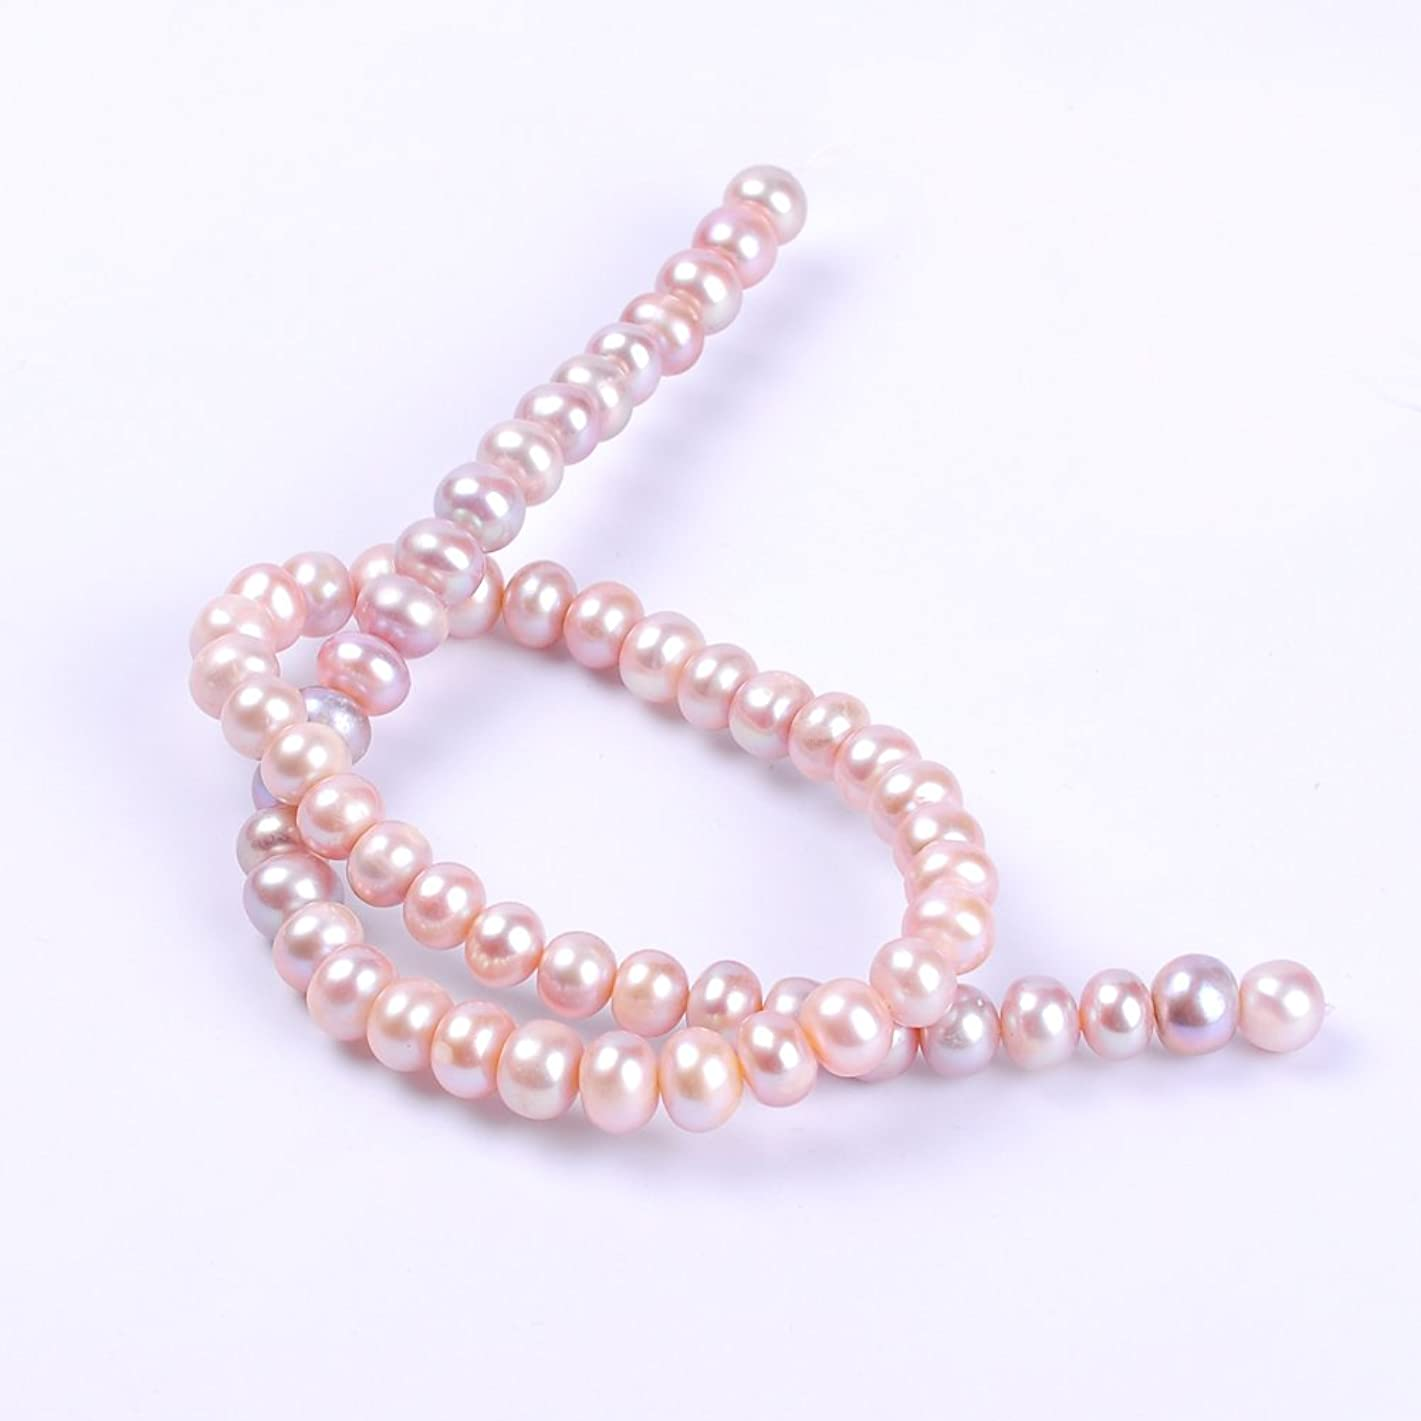 Ruilong AAAA Screw Thread Abacus Natural Freshwater Pearl Loose Beads For Jewelry Making (8-9MM Pink) ehbwbi966545623